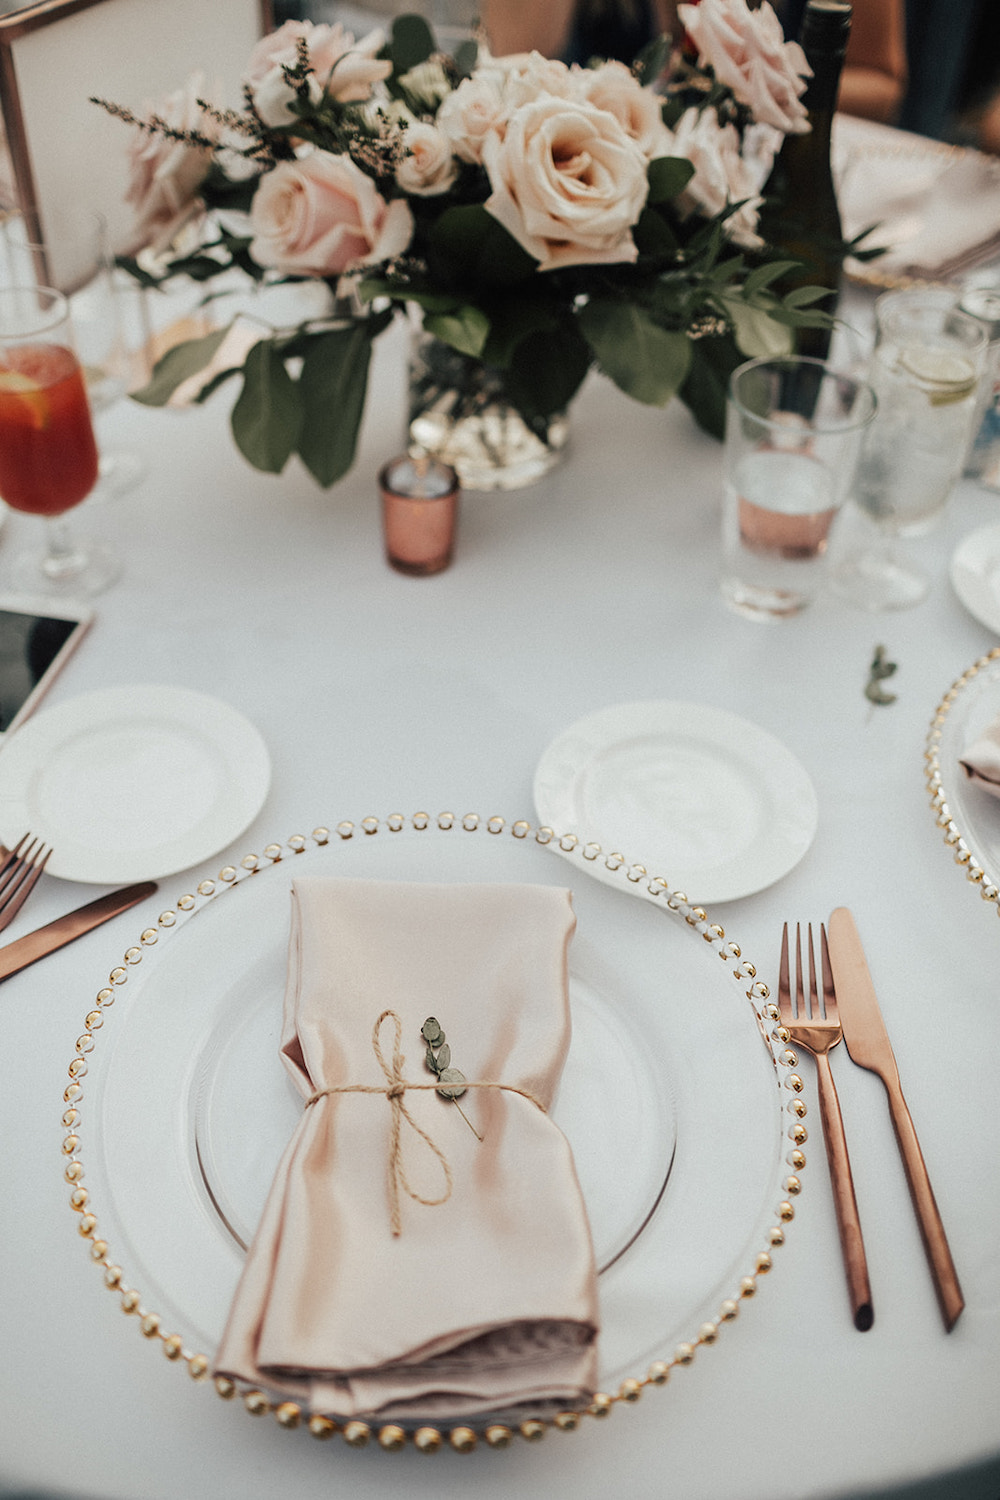 Blush Rose Wedding Centrepieces - Blush and Rose Gold Wedding Decor Ideas